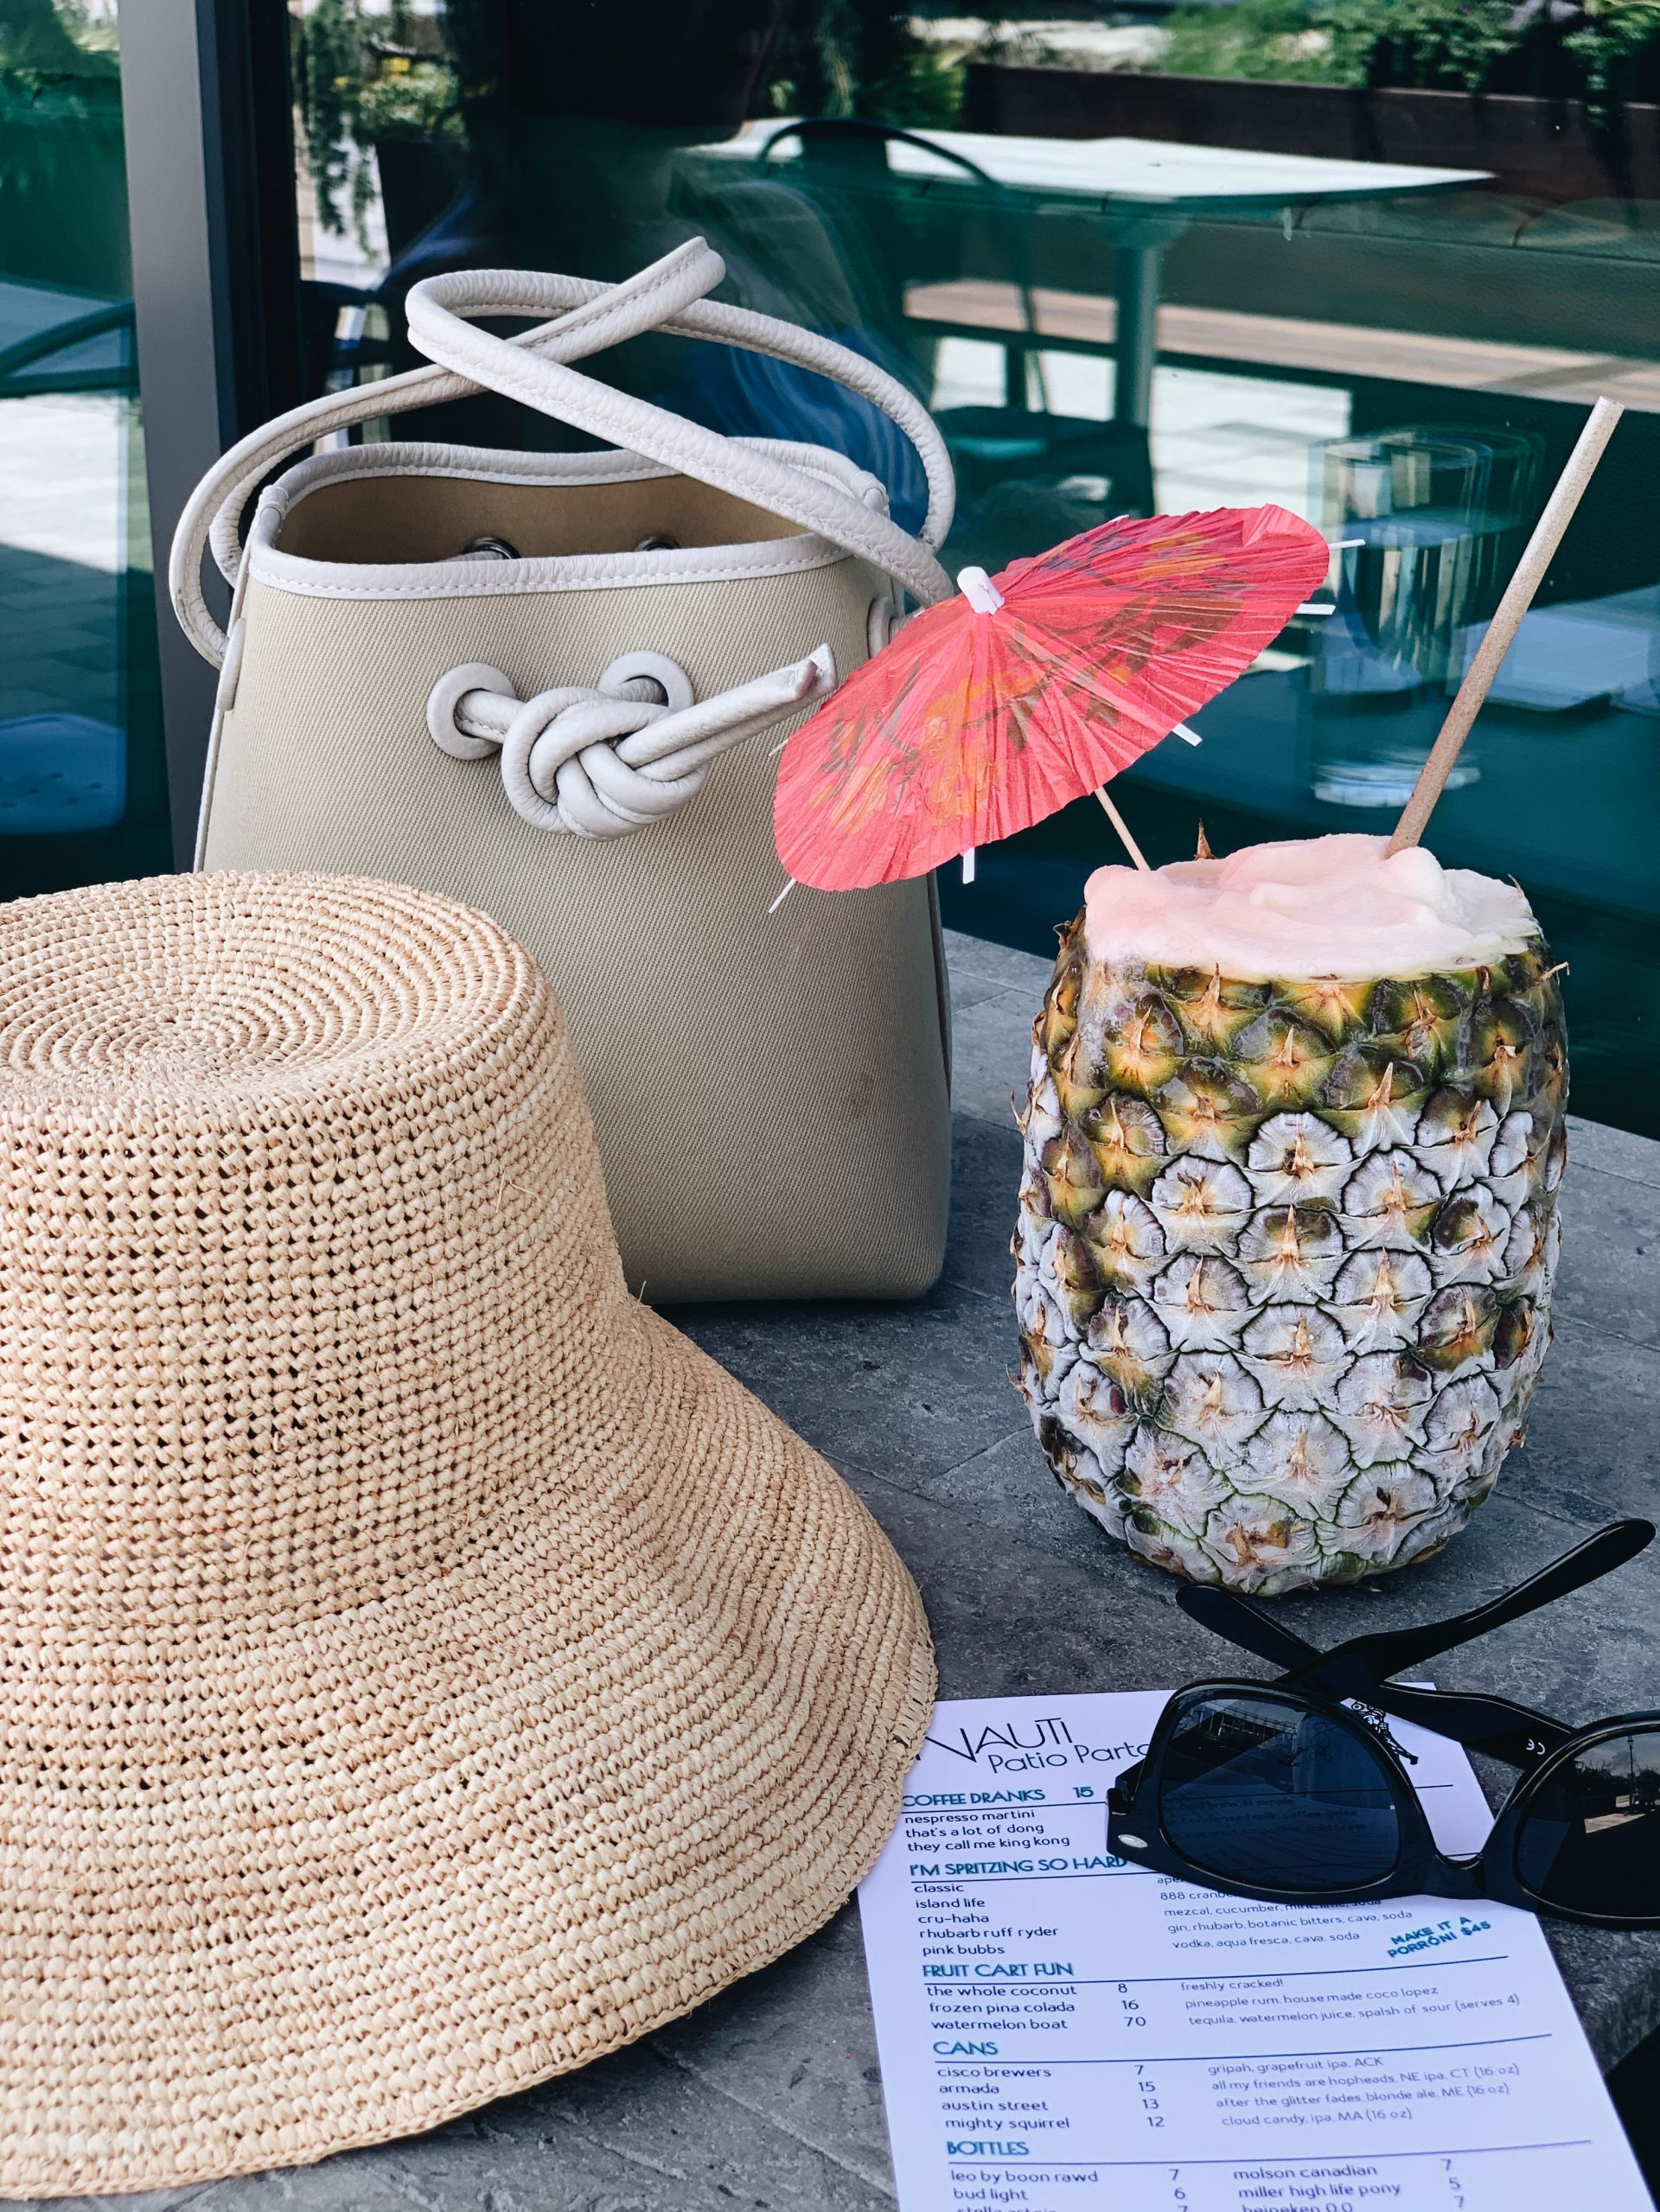 Lifestyle blogger Meaghan Murray shares a post of things from the week of 6/6/21 on her blog The Stopover